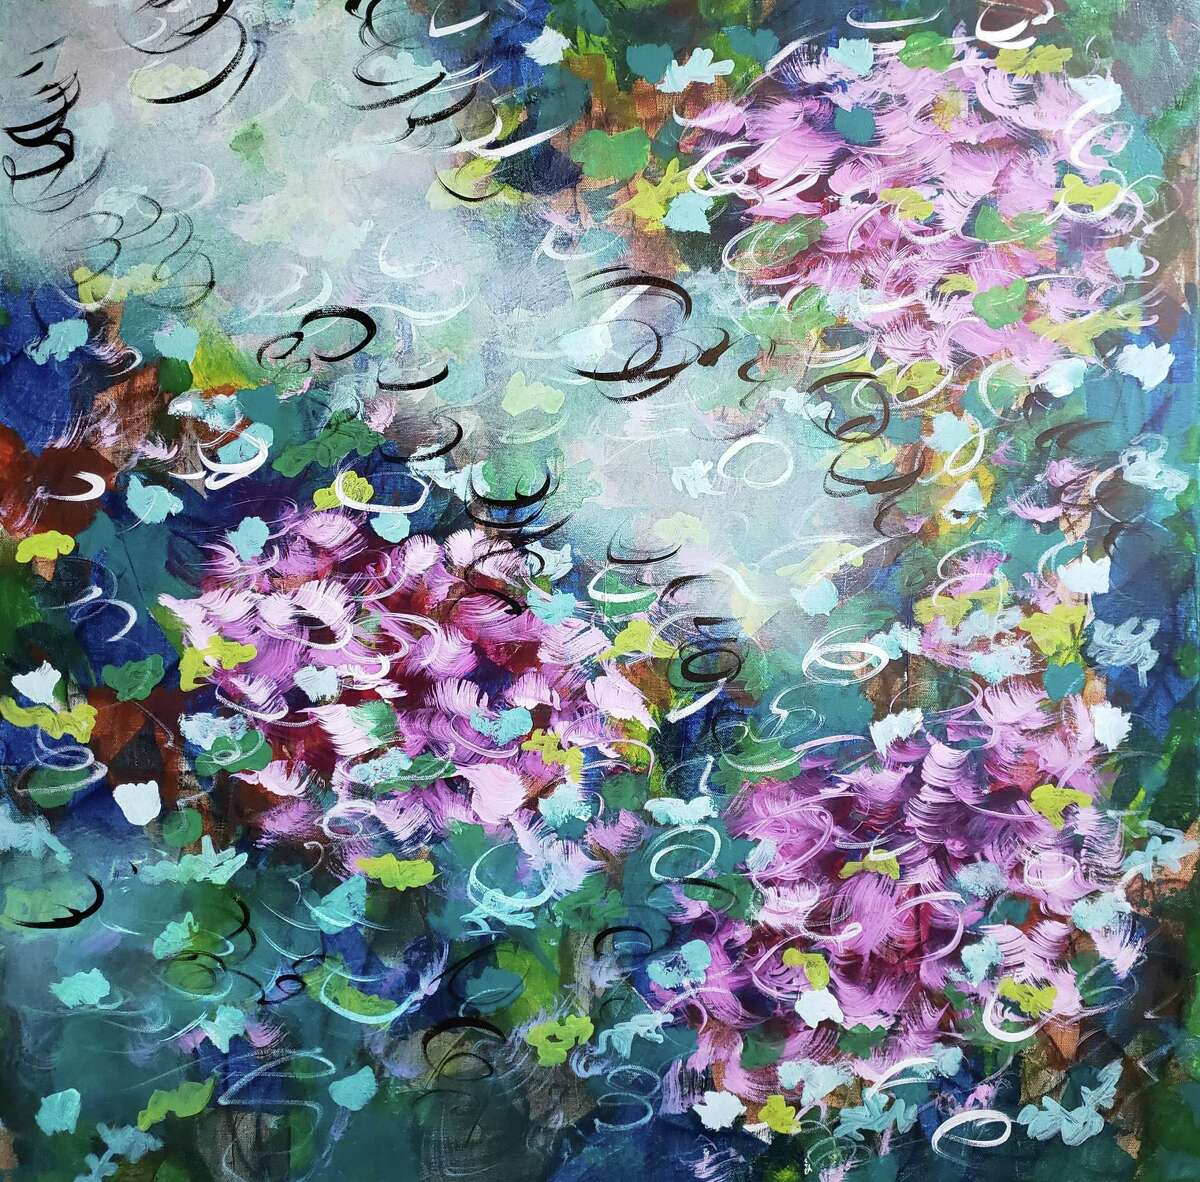 Racquel Miller's Butteryfly Kisses acrylic work on gallery wrapped canvas.